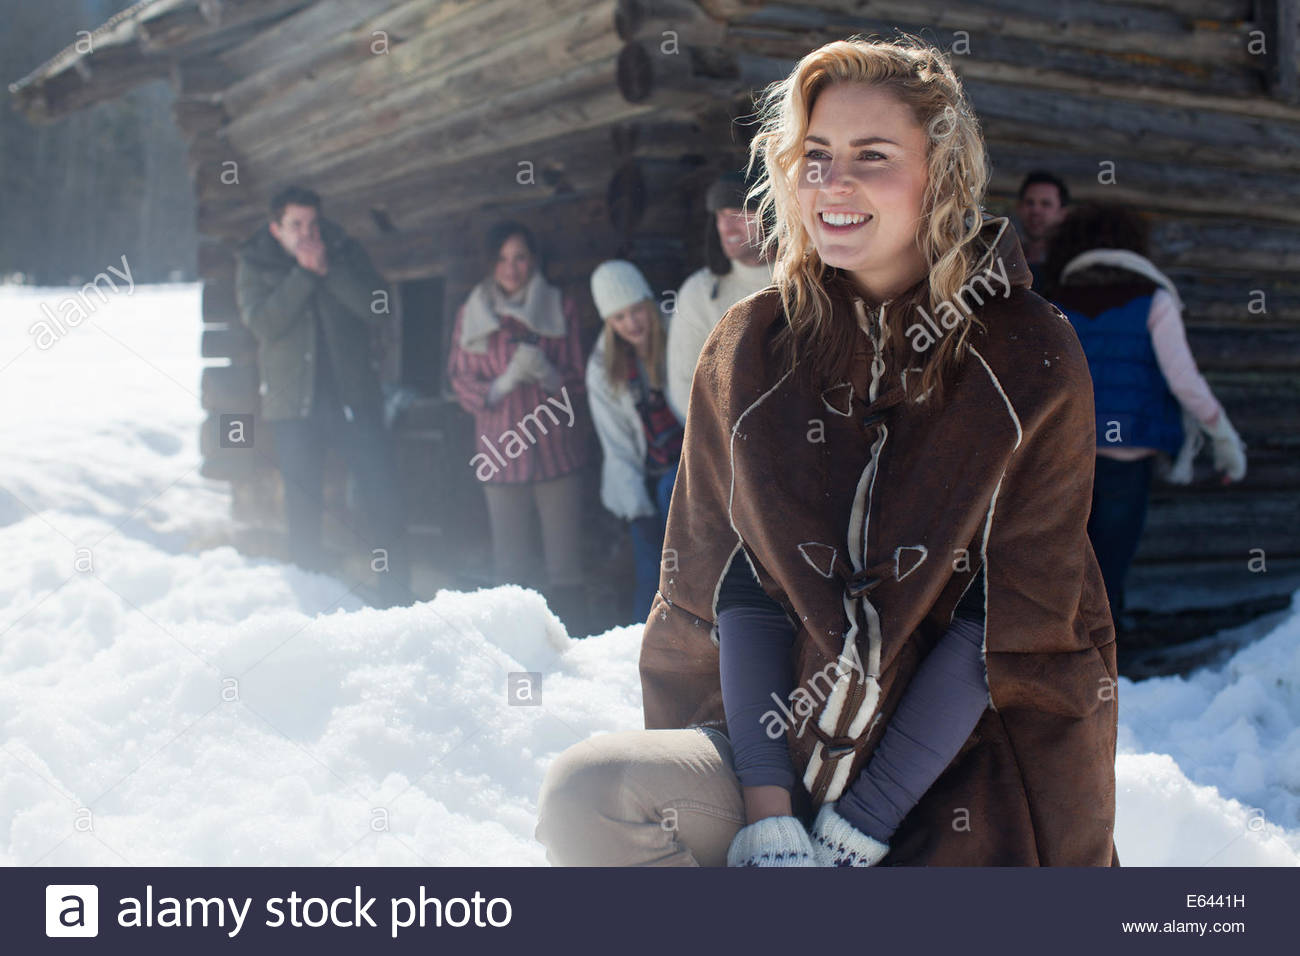 Portrait of smiling woman with friends in background - Stock Image